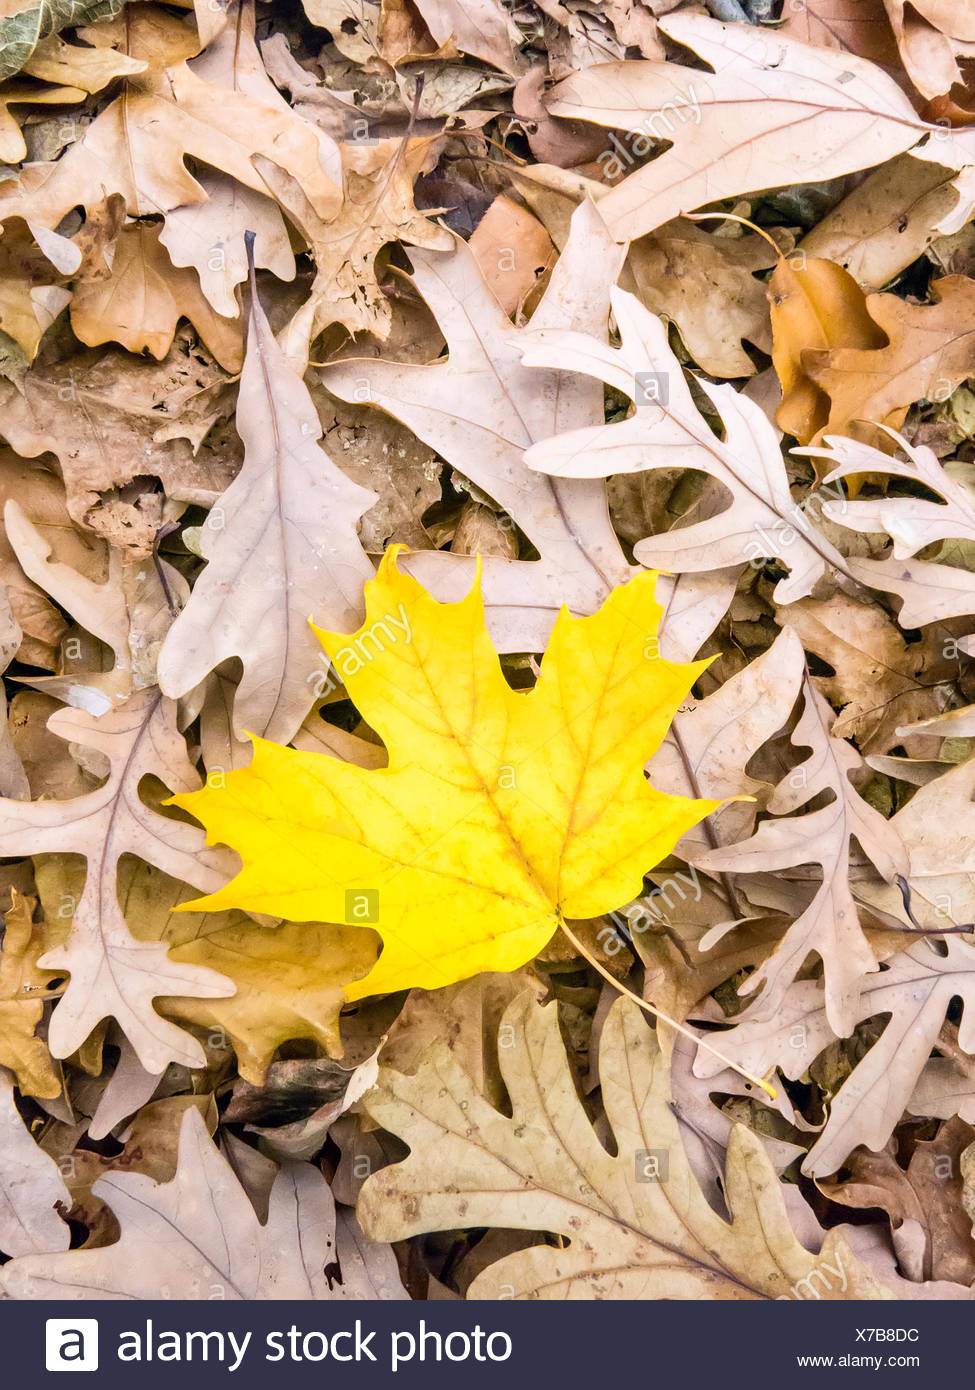 Yellow leaf on dry brown leaves - Stock Image